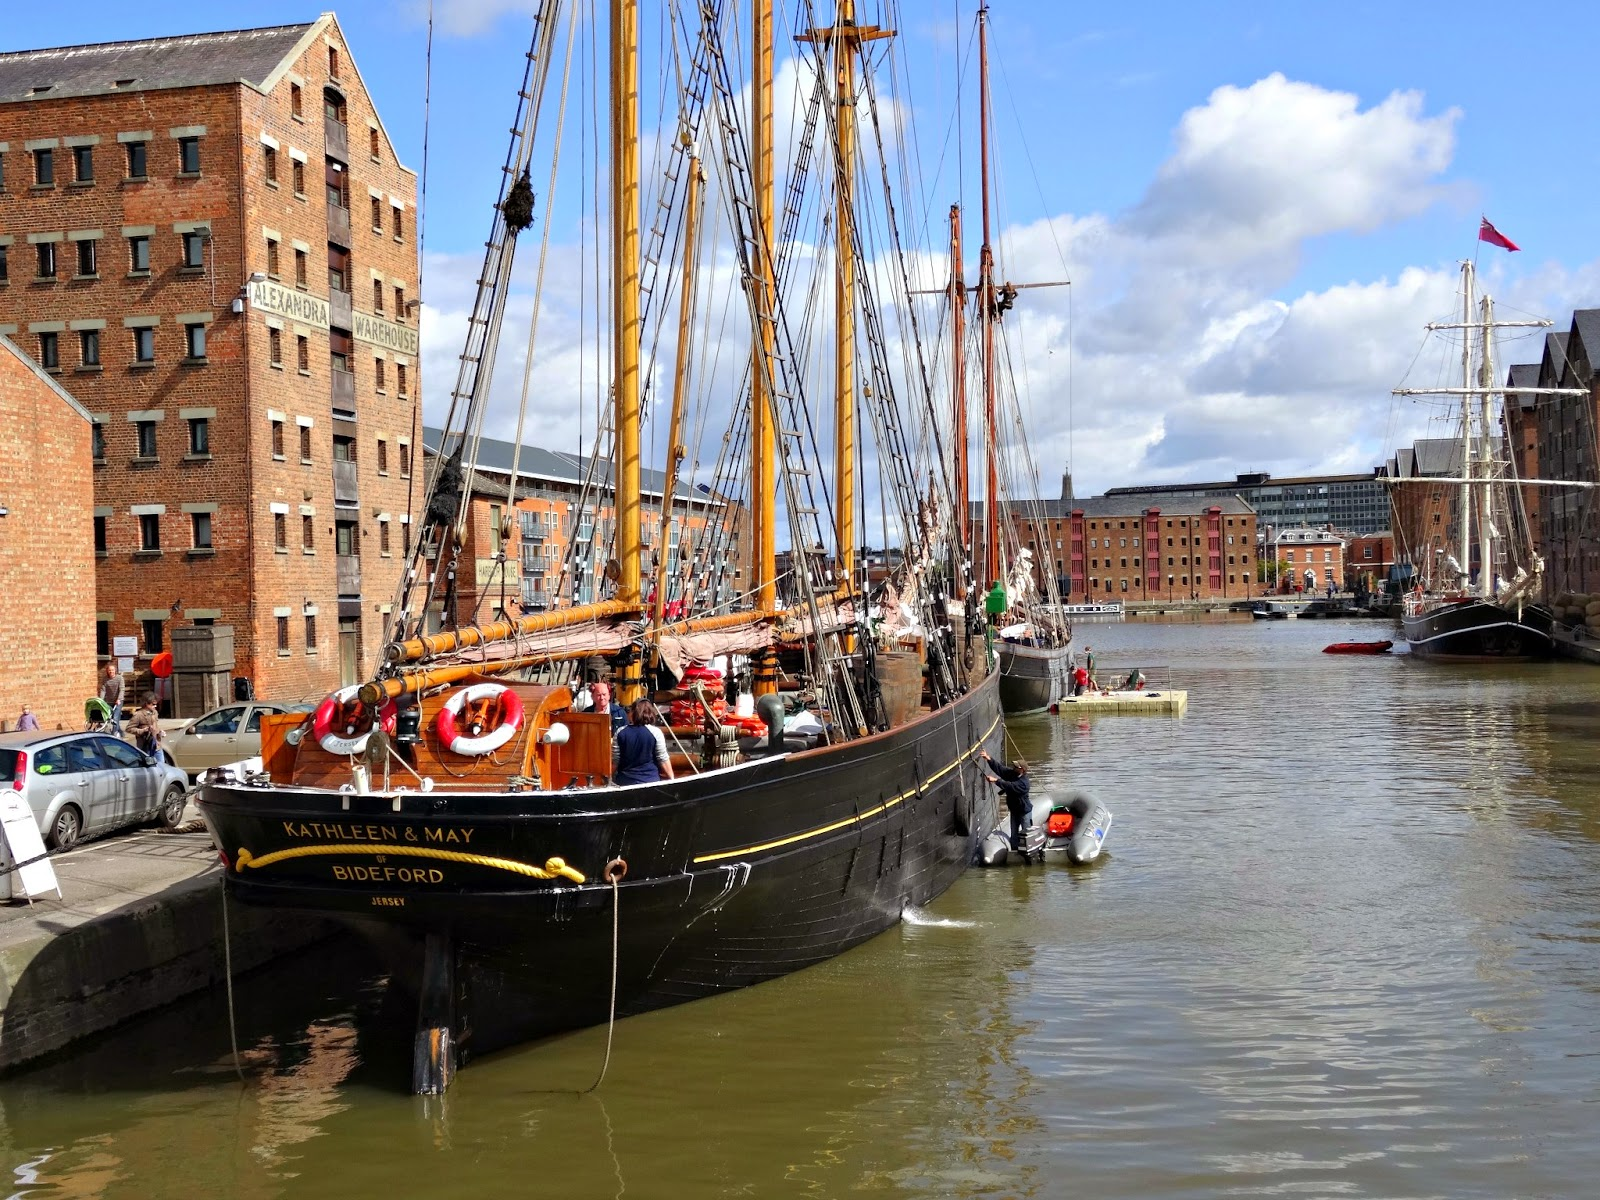 Gloucester Quays Filming location for Disney